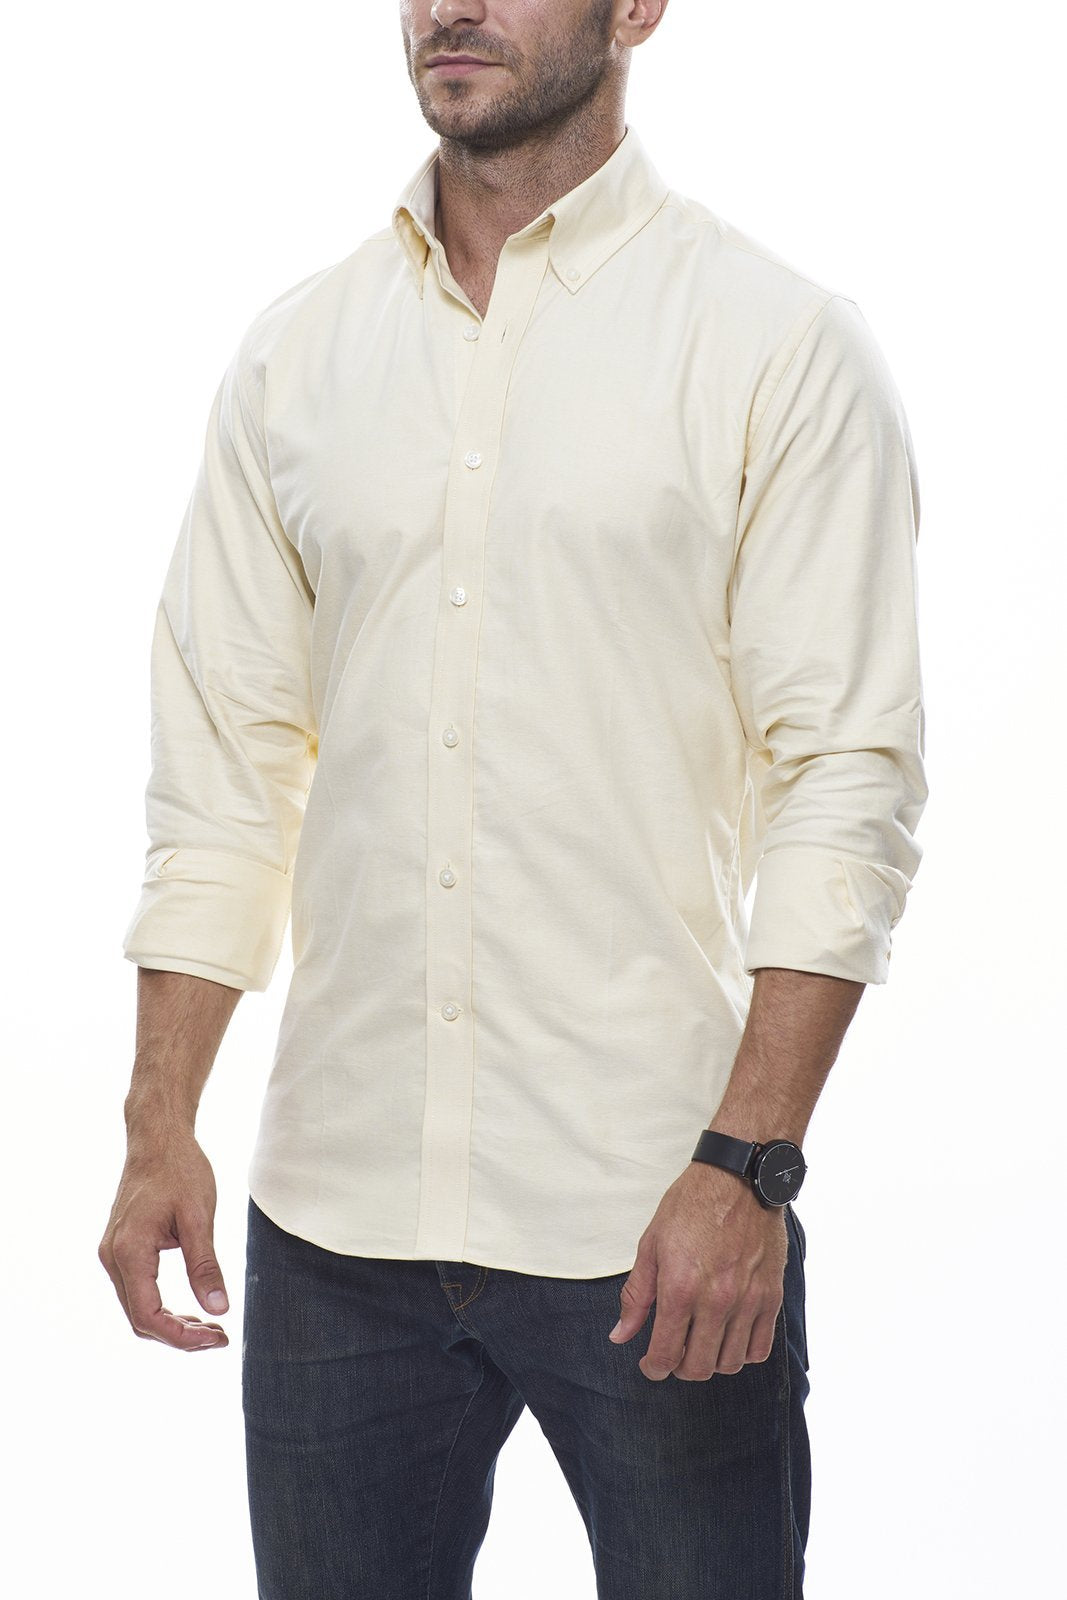 Lightweight Oxford in Yellow: Semi-Spread Collar, Long Sleeve